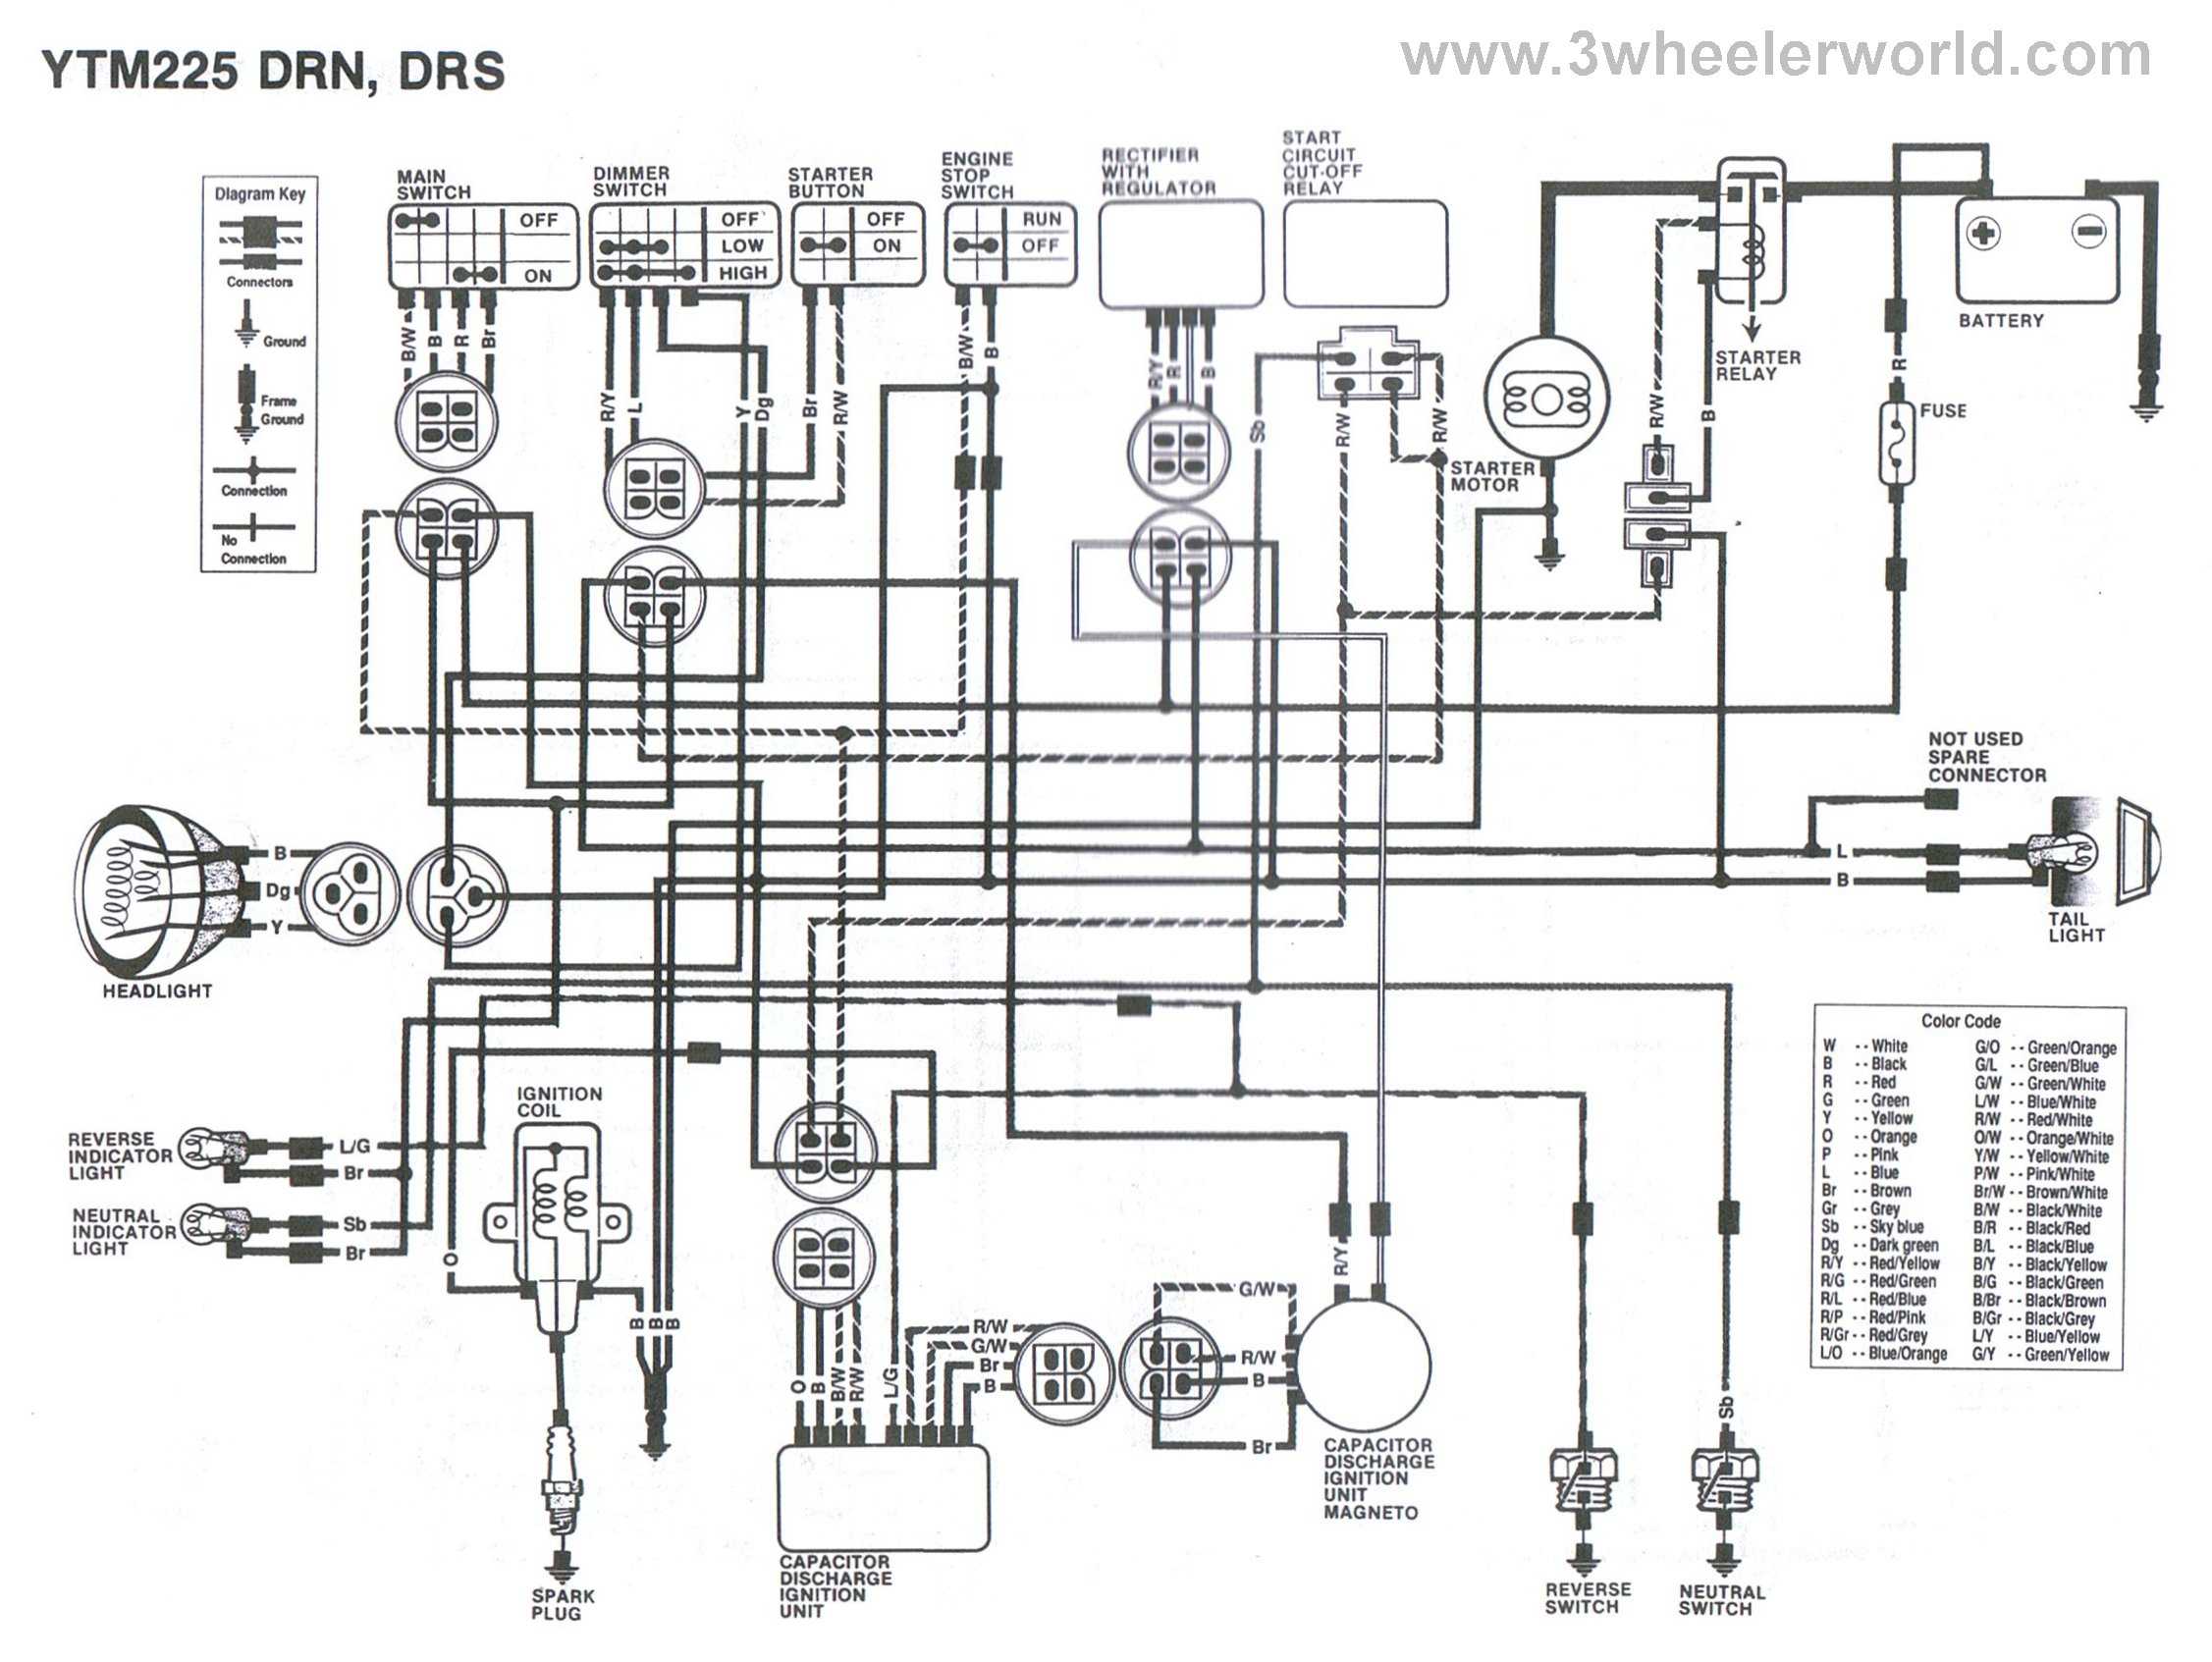 Yamaha Wiring Schematic | Wiring Diagram on